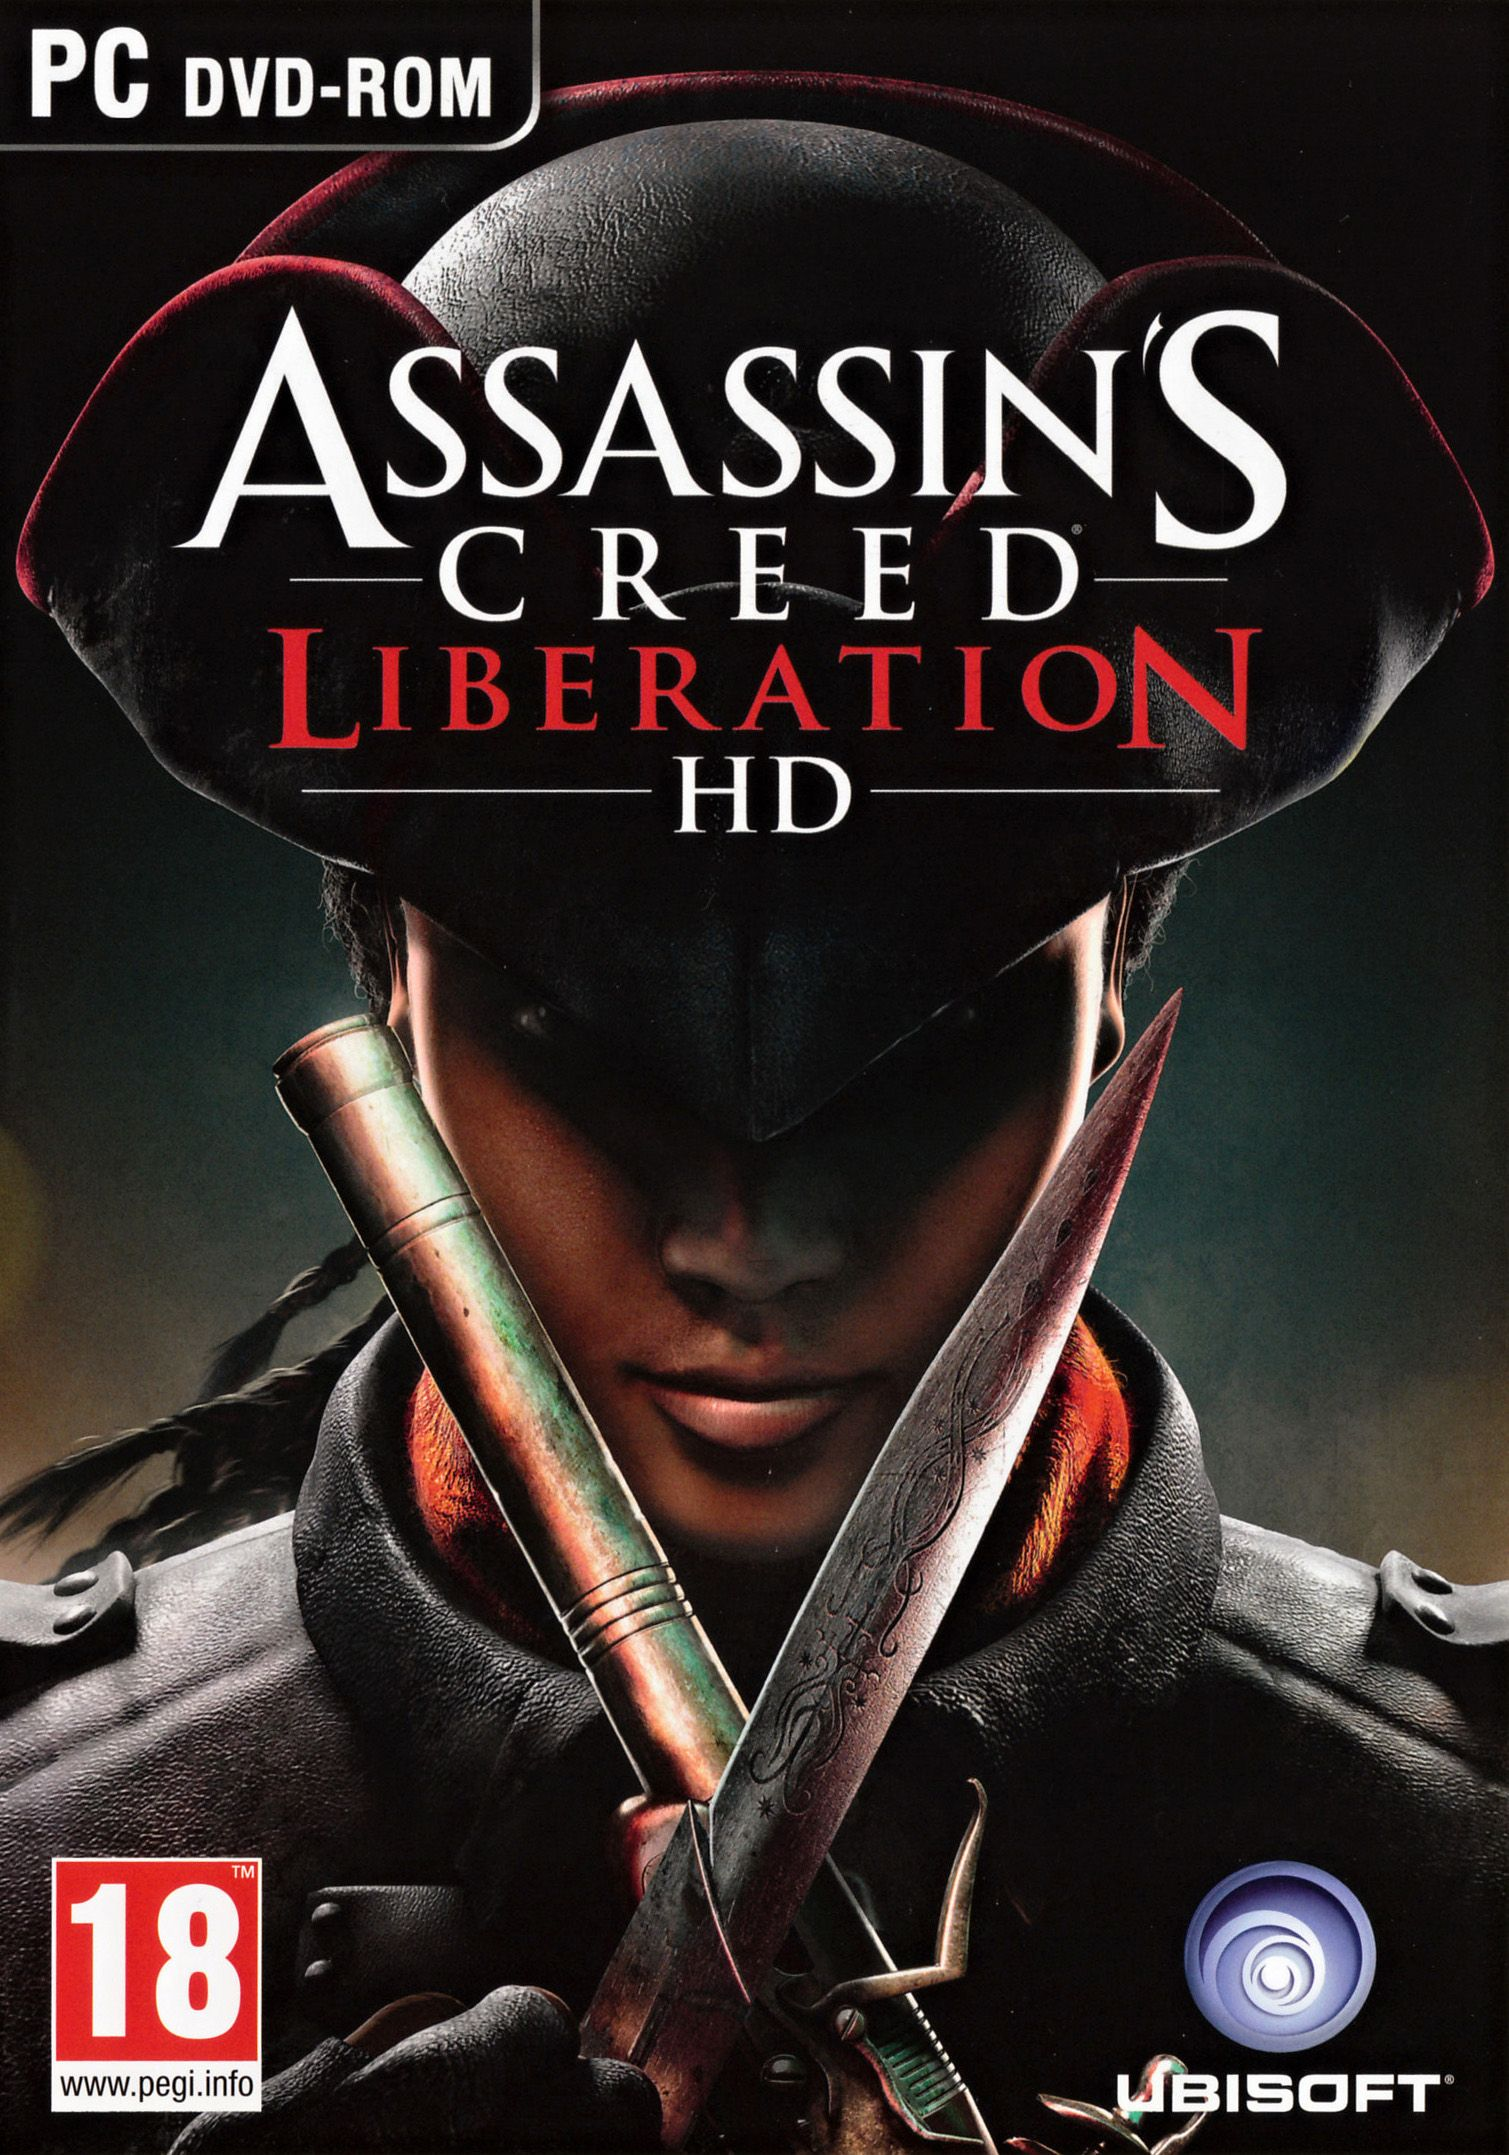 Pin by L Side Of Gaming on Game Covers Assassins creed